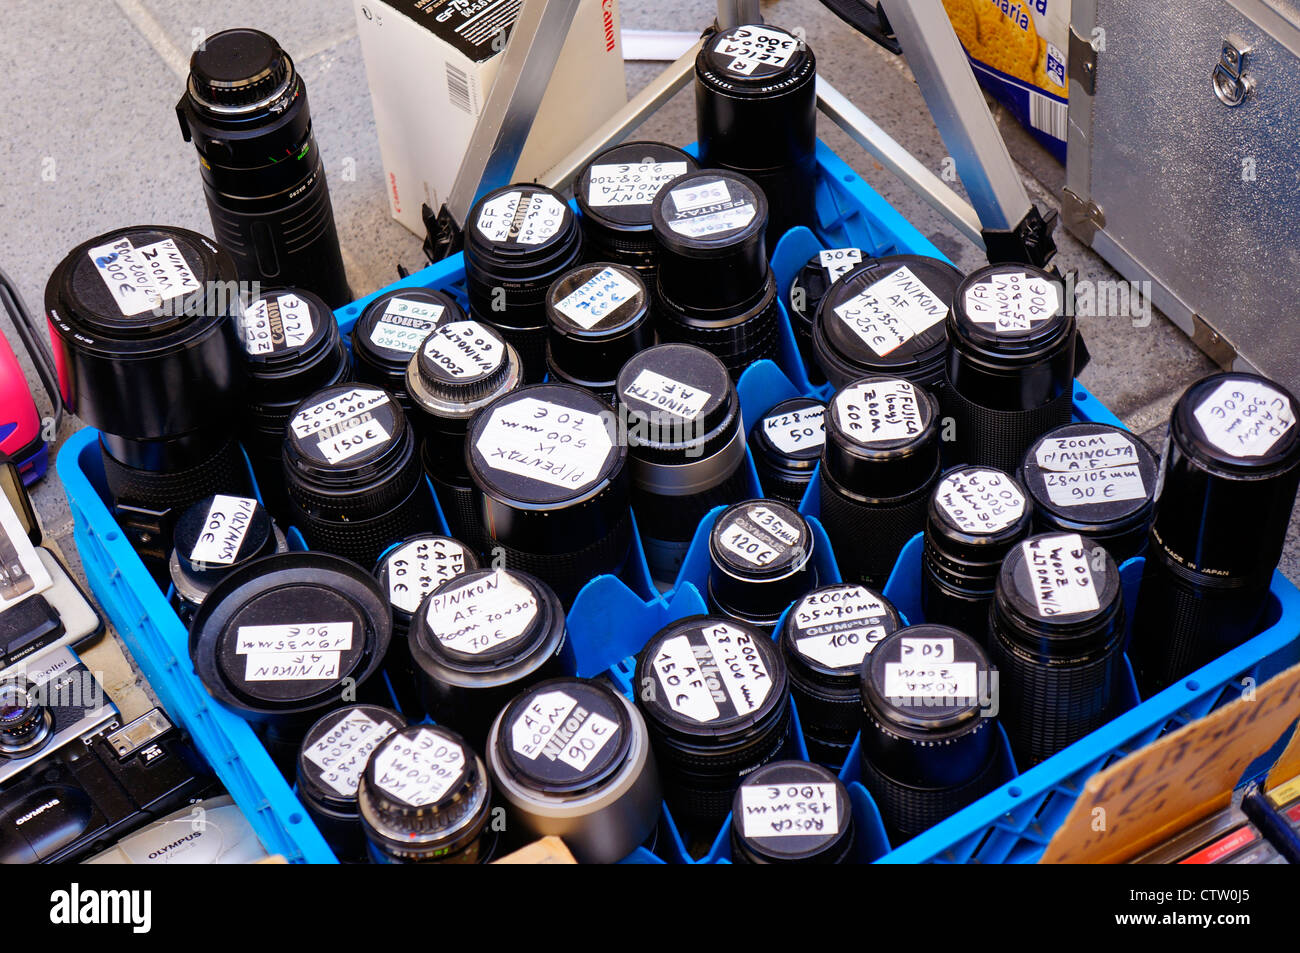 collectible old lens for sale in El Rastro flea market in Madrid, Spain - Stock Image